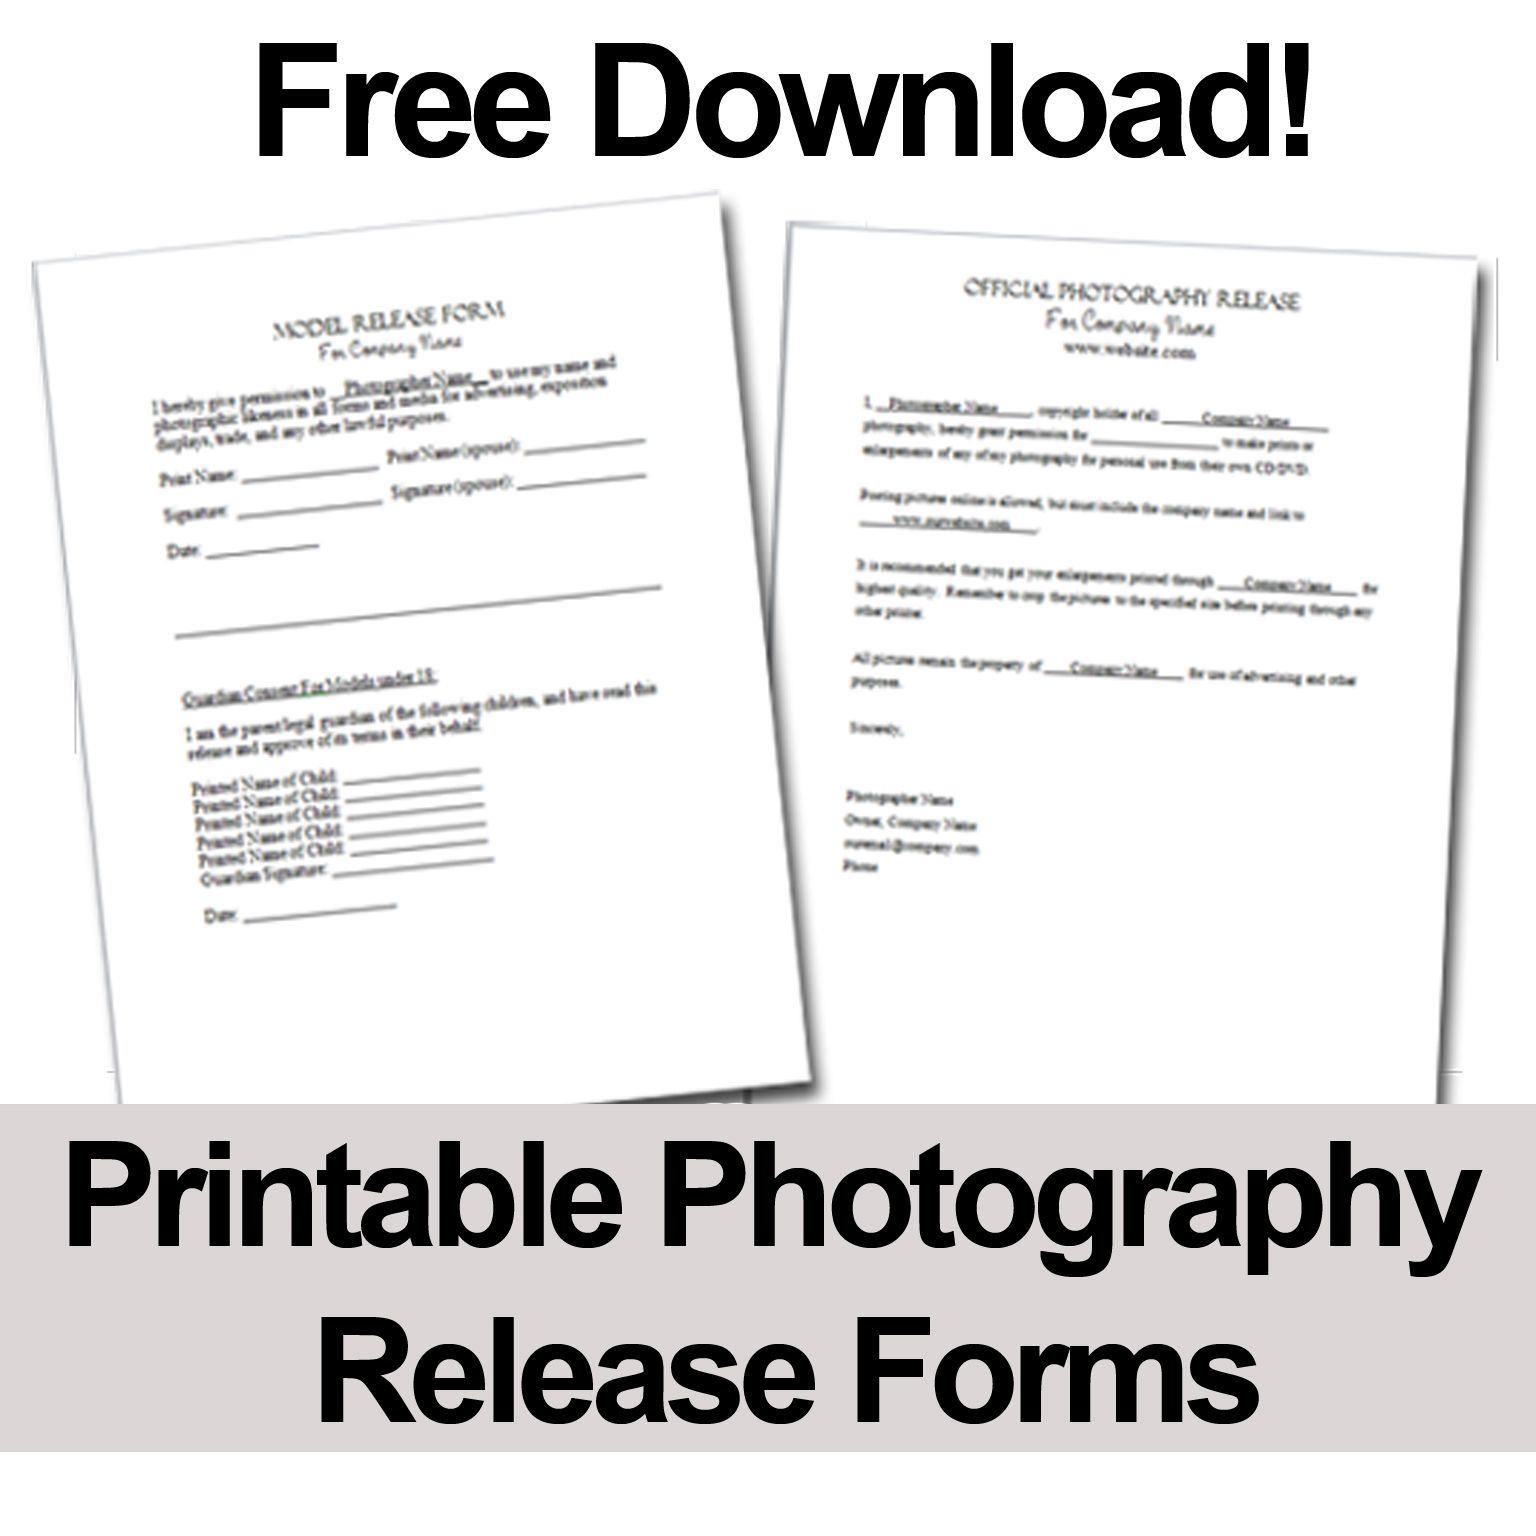 Print These Free Photography Release Forms To Give Your Clients - Free Printable Photo Release Form